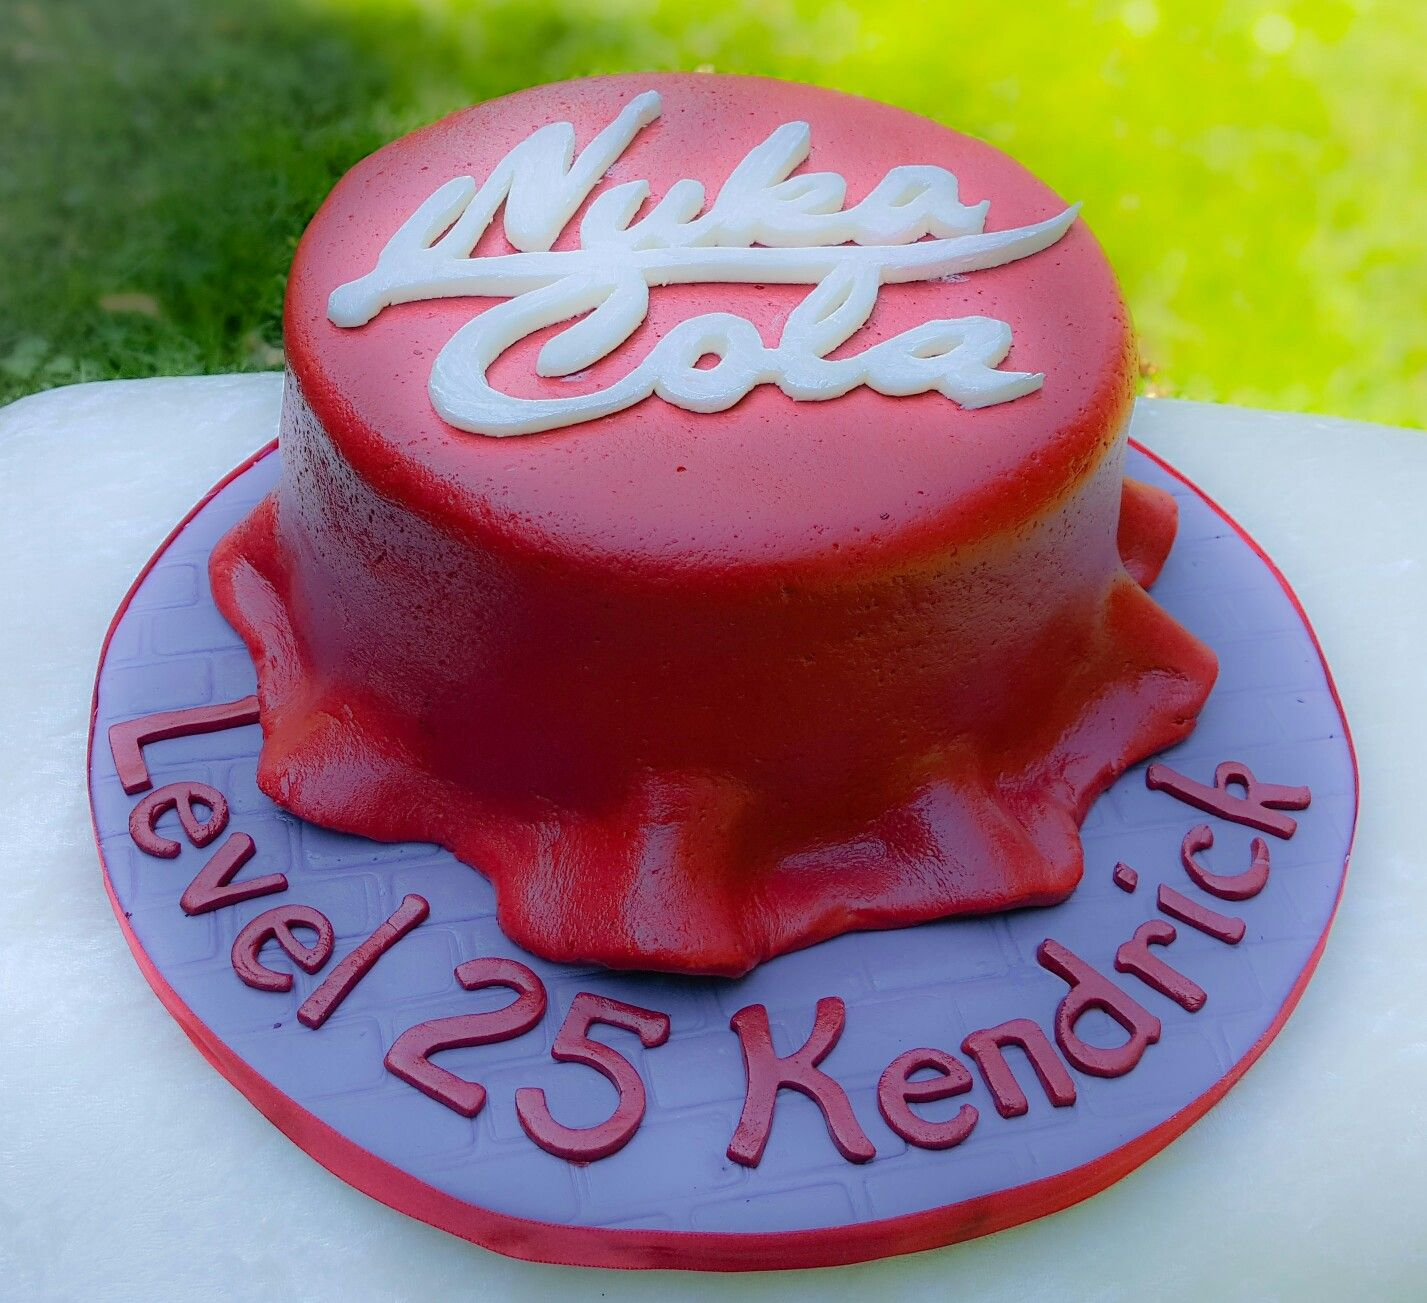 Fallout 4 Cake With Images How To Make Cake Amazing Cakes